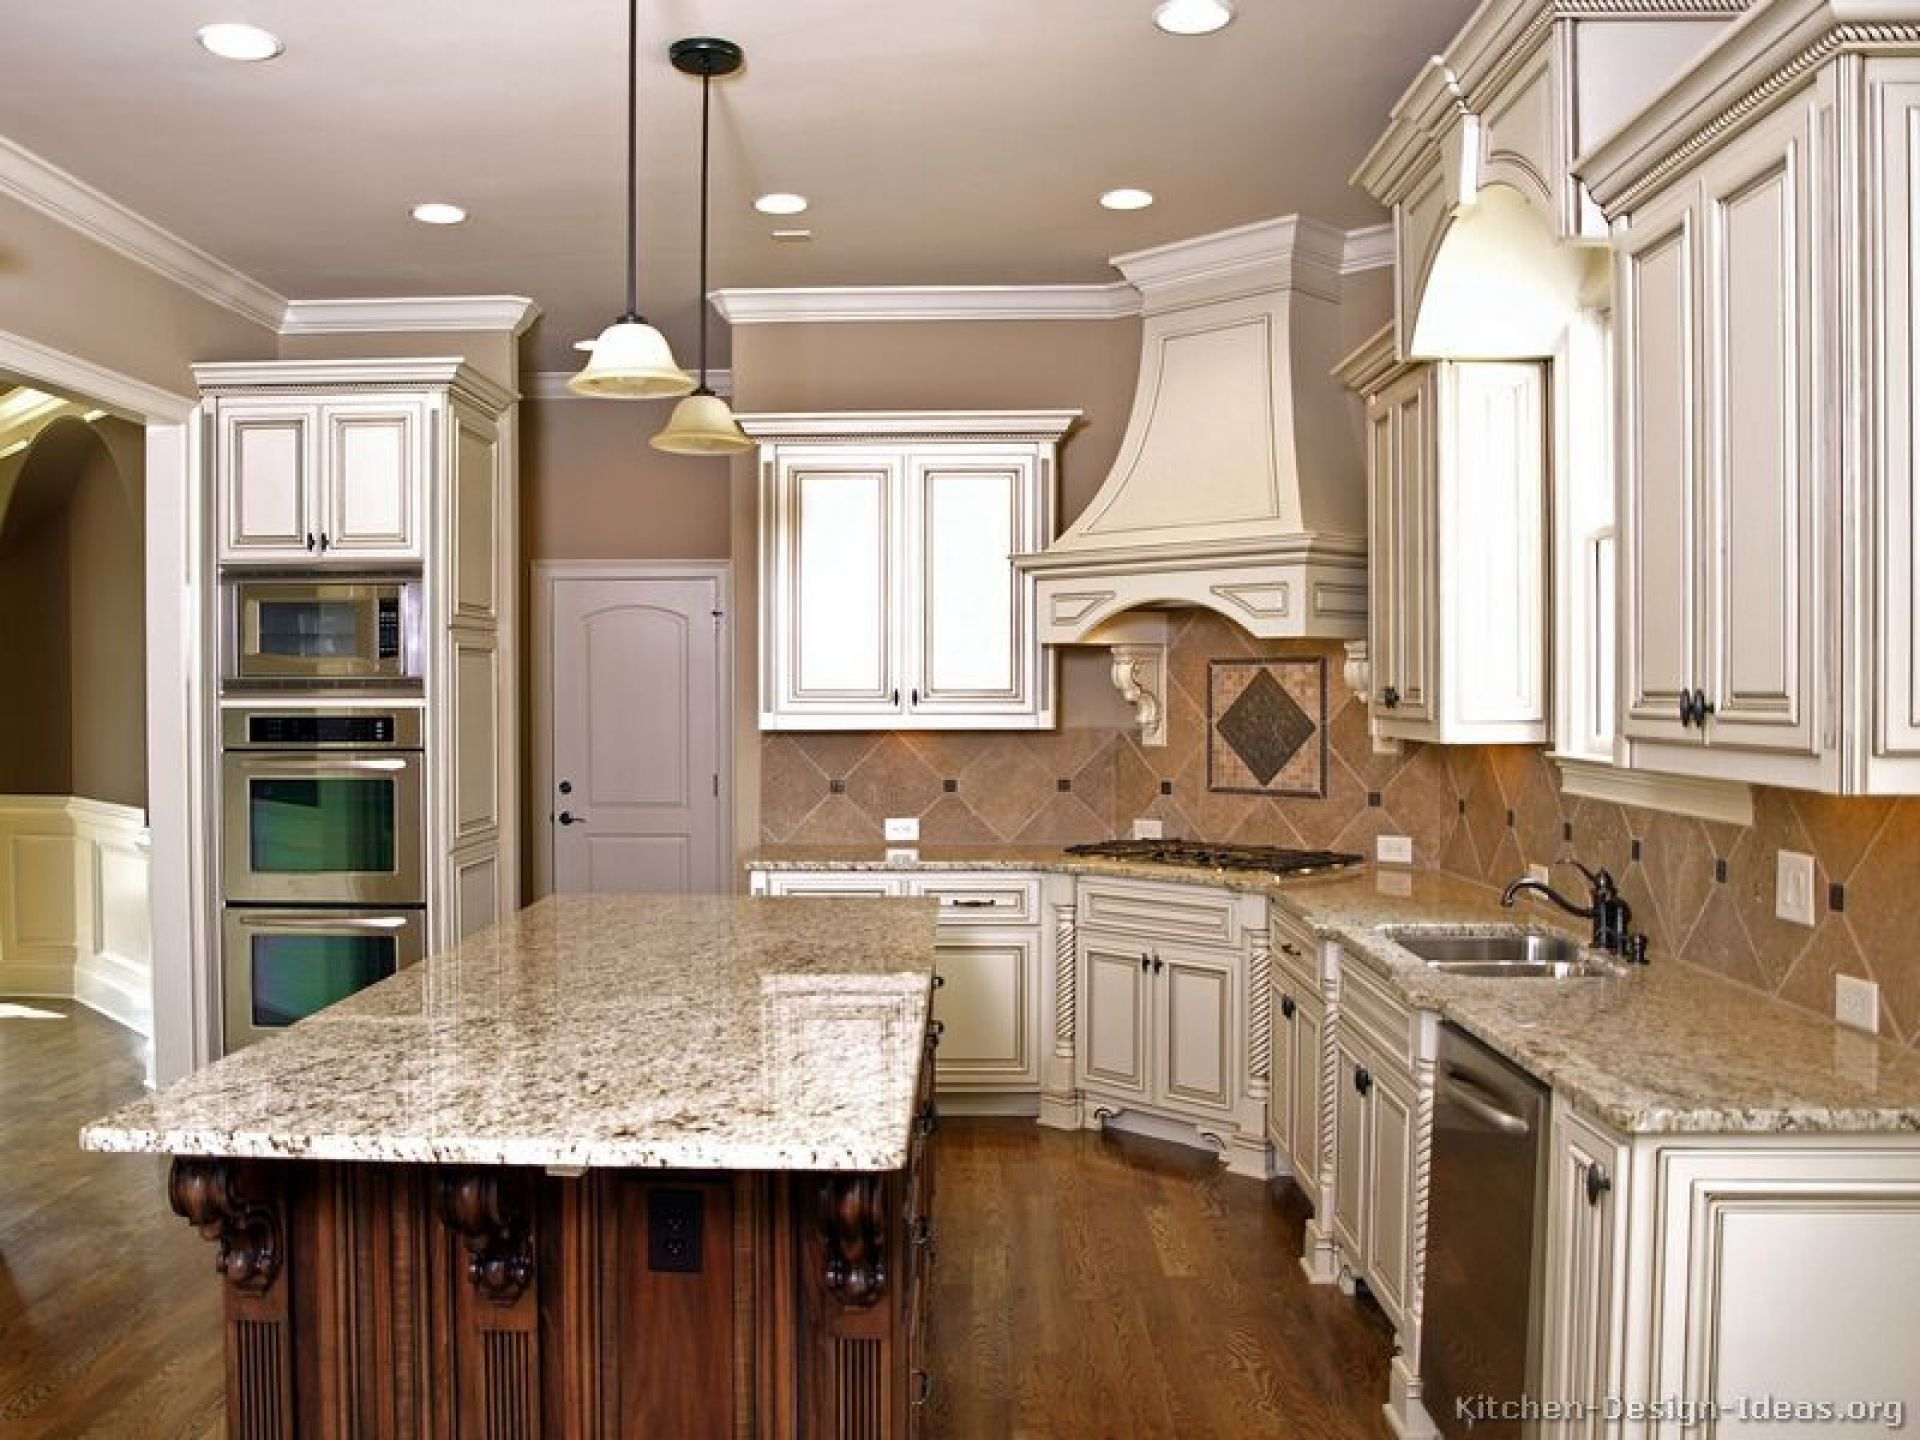 Fancy White Wooden Custom Handmade Chimney Hood And White Polished Feat Walnut Two Tone Antique White Kitchen Glazed Kitchen Cabinets Antique Kitchen Cabinets